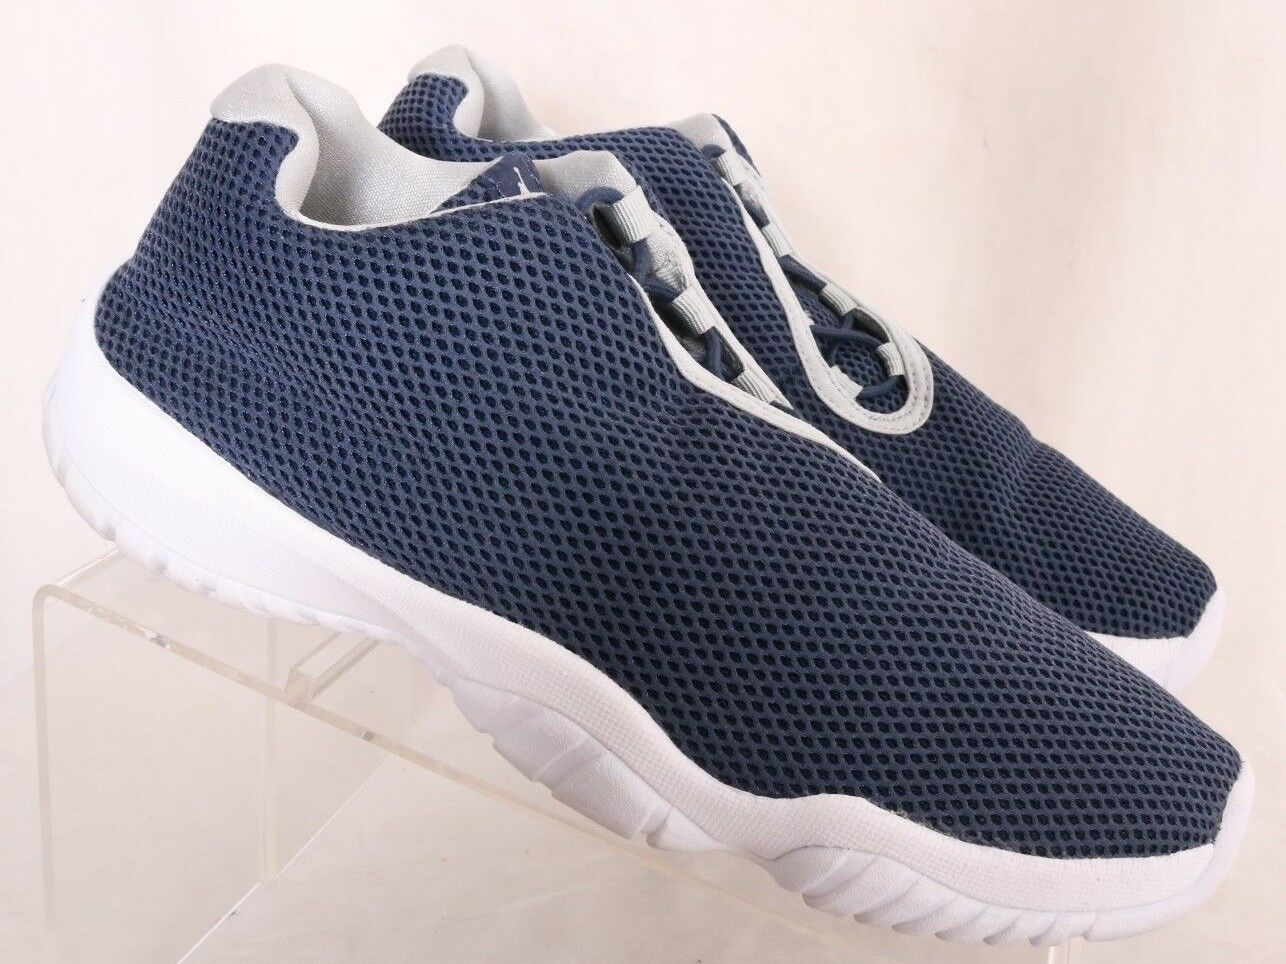 f05707011f5e06 ... cool grey uk online outlet hilxyz3789 f34e3 63c2b  promo code nike  718948 401 air jordan future mens low training basketball sneakers mens  future us